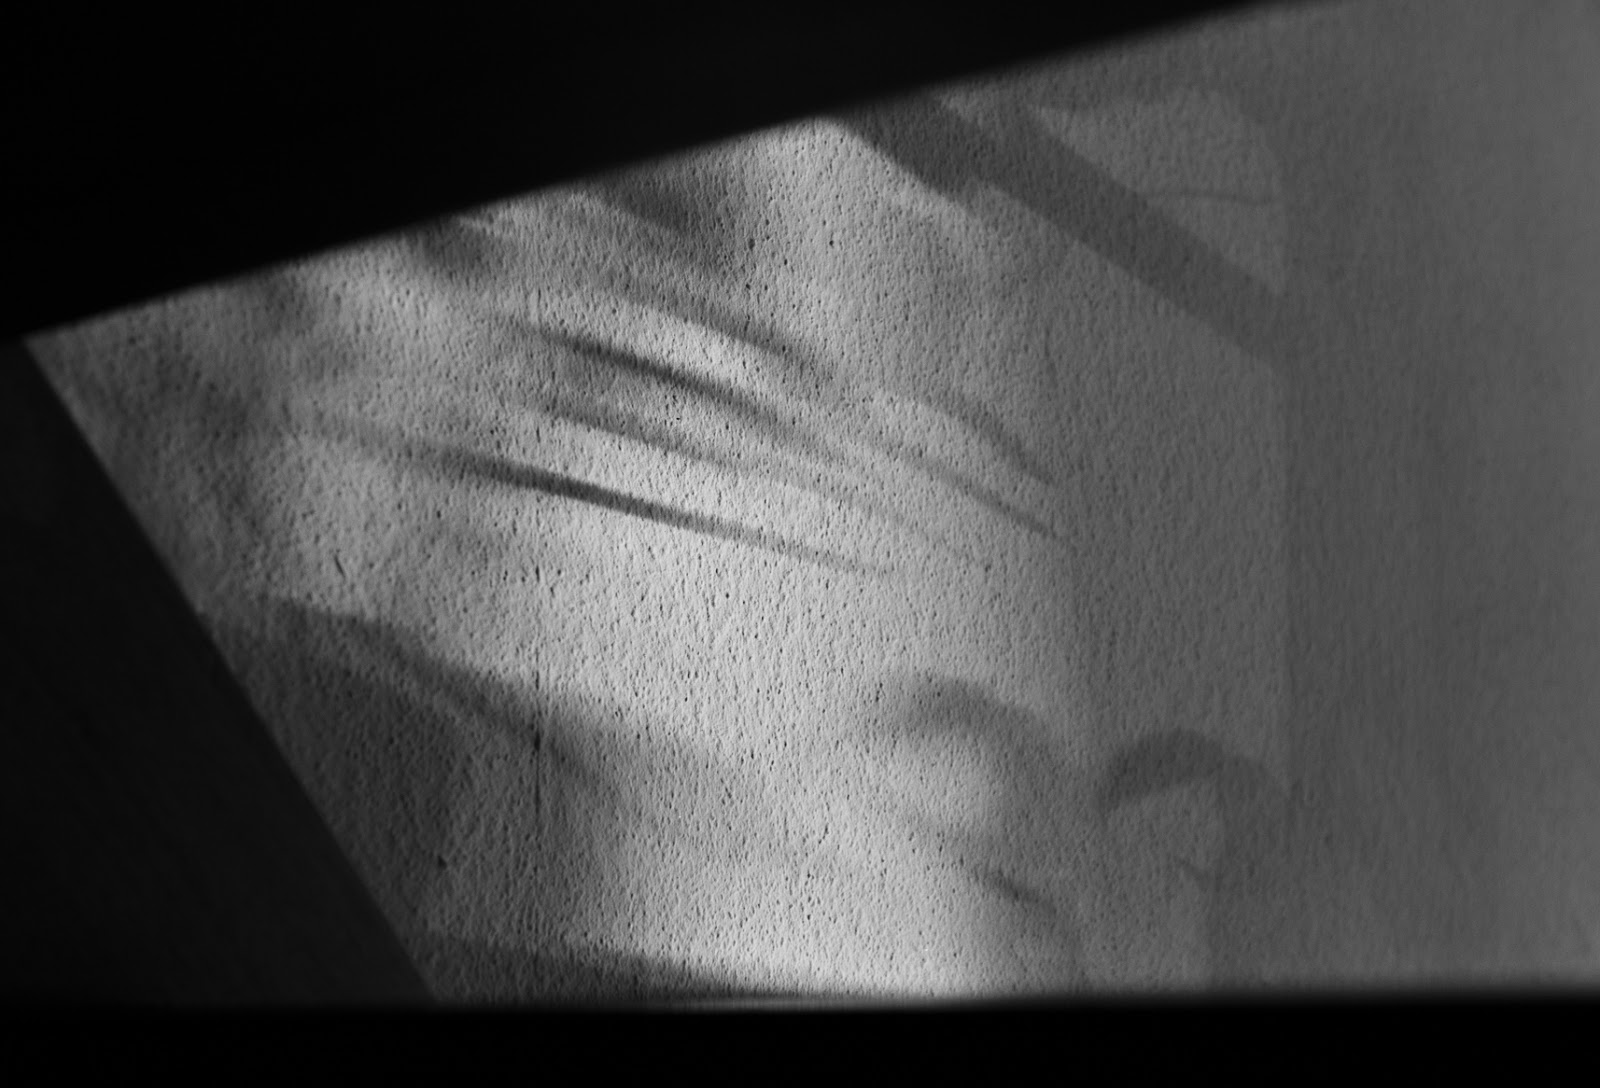 Matthew G. Beall vision driven black and white find art photography playing with shadows:: stairs, plants and a wall   2014